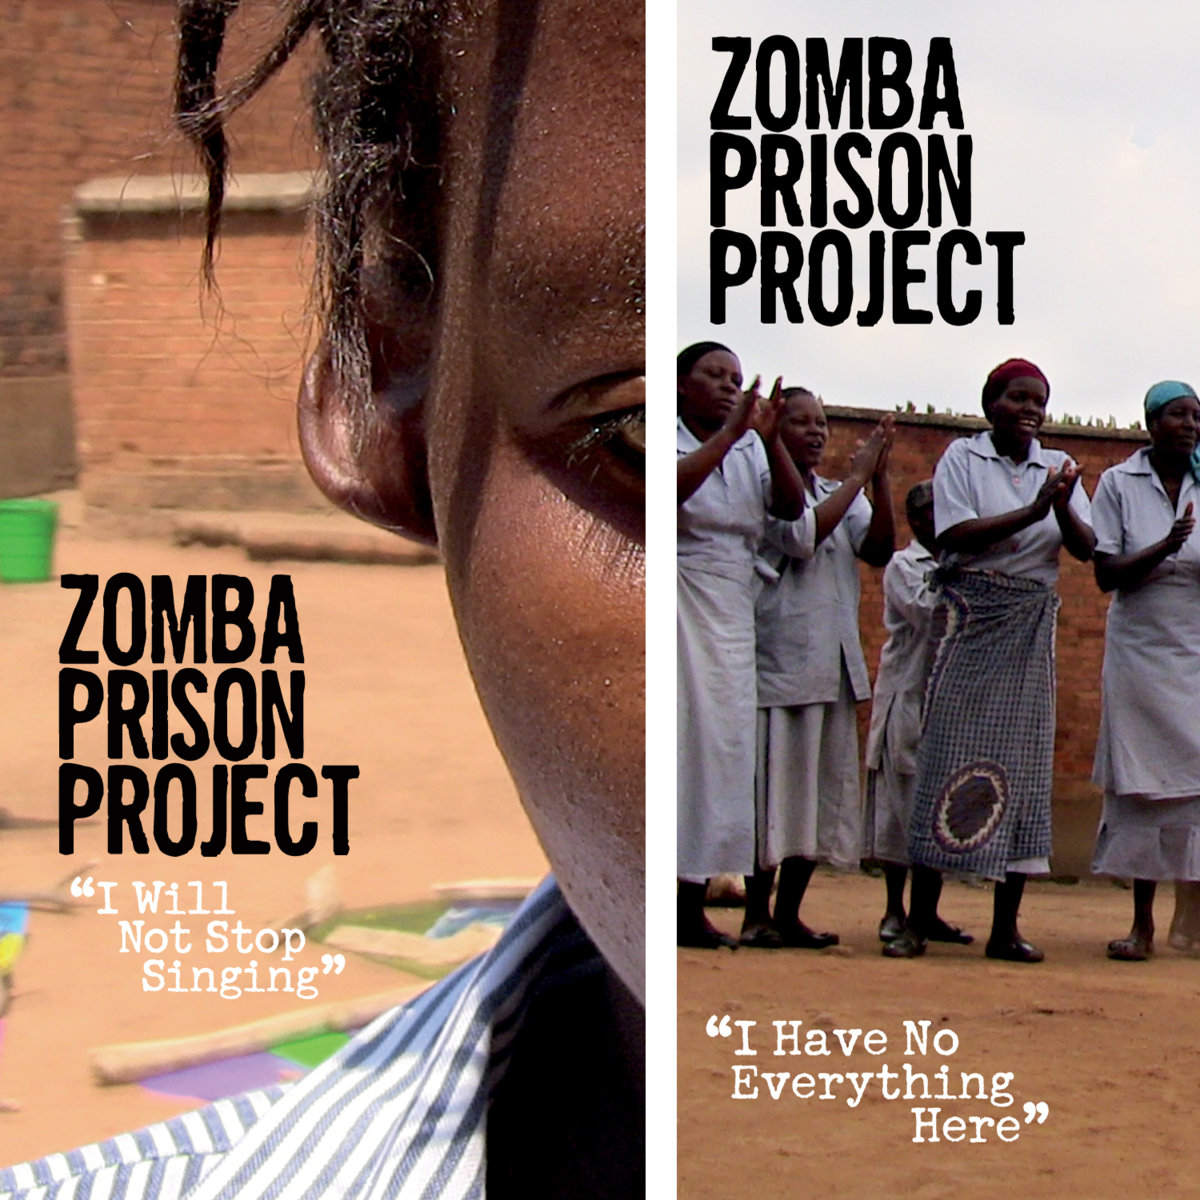 Where can I donate to or buy Zomba Prison Project?